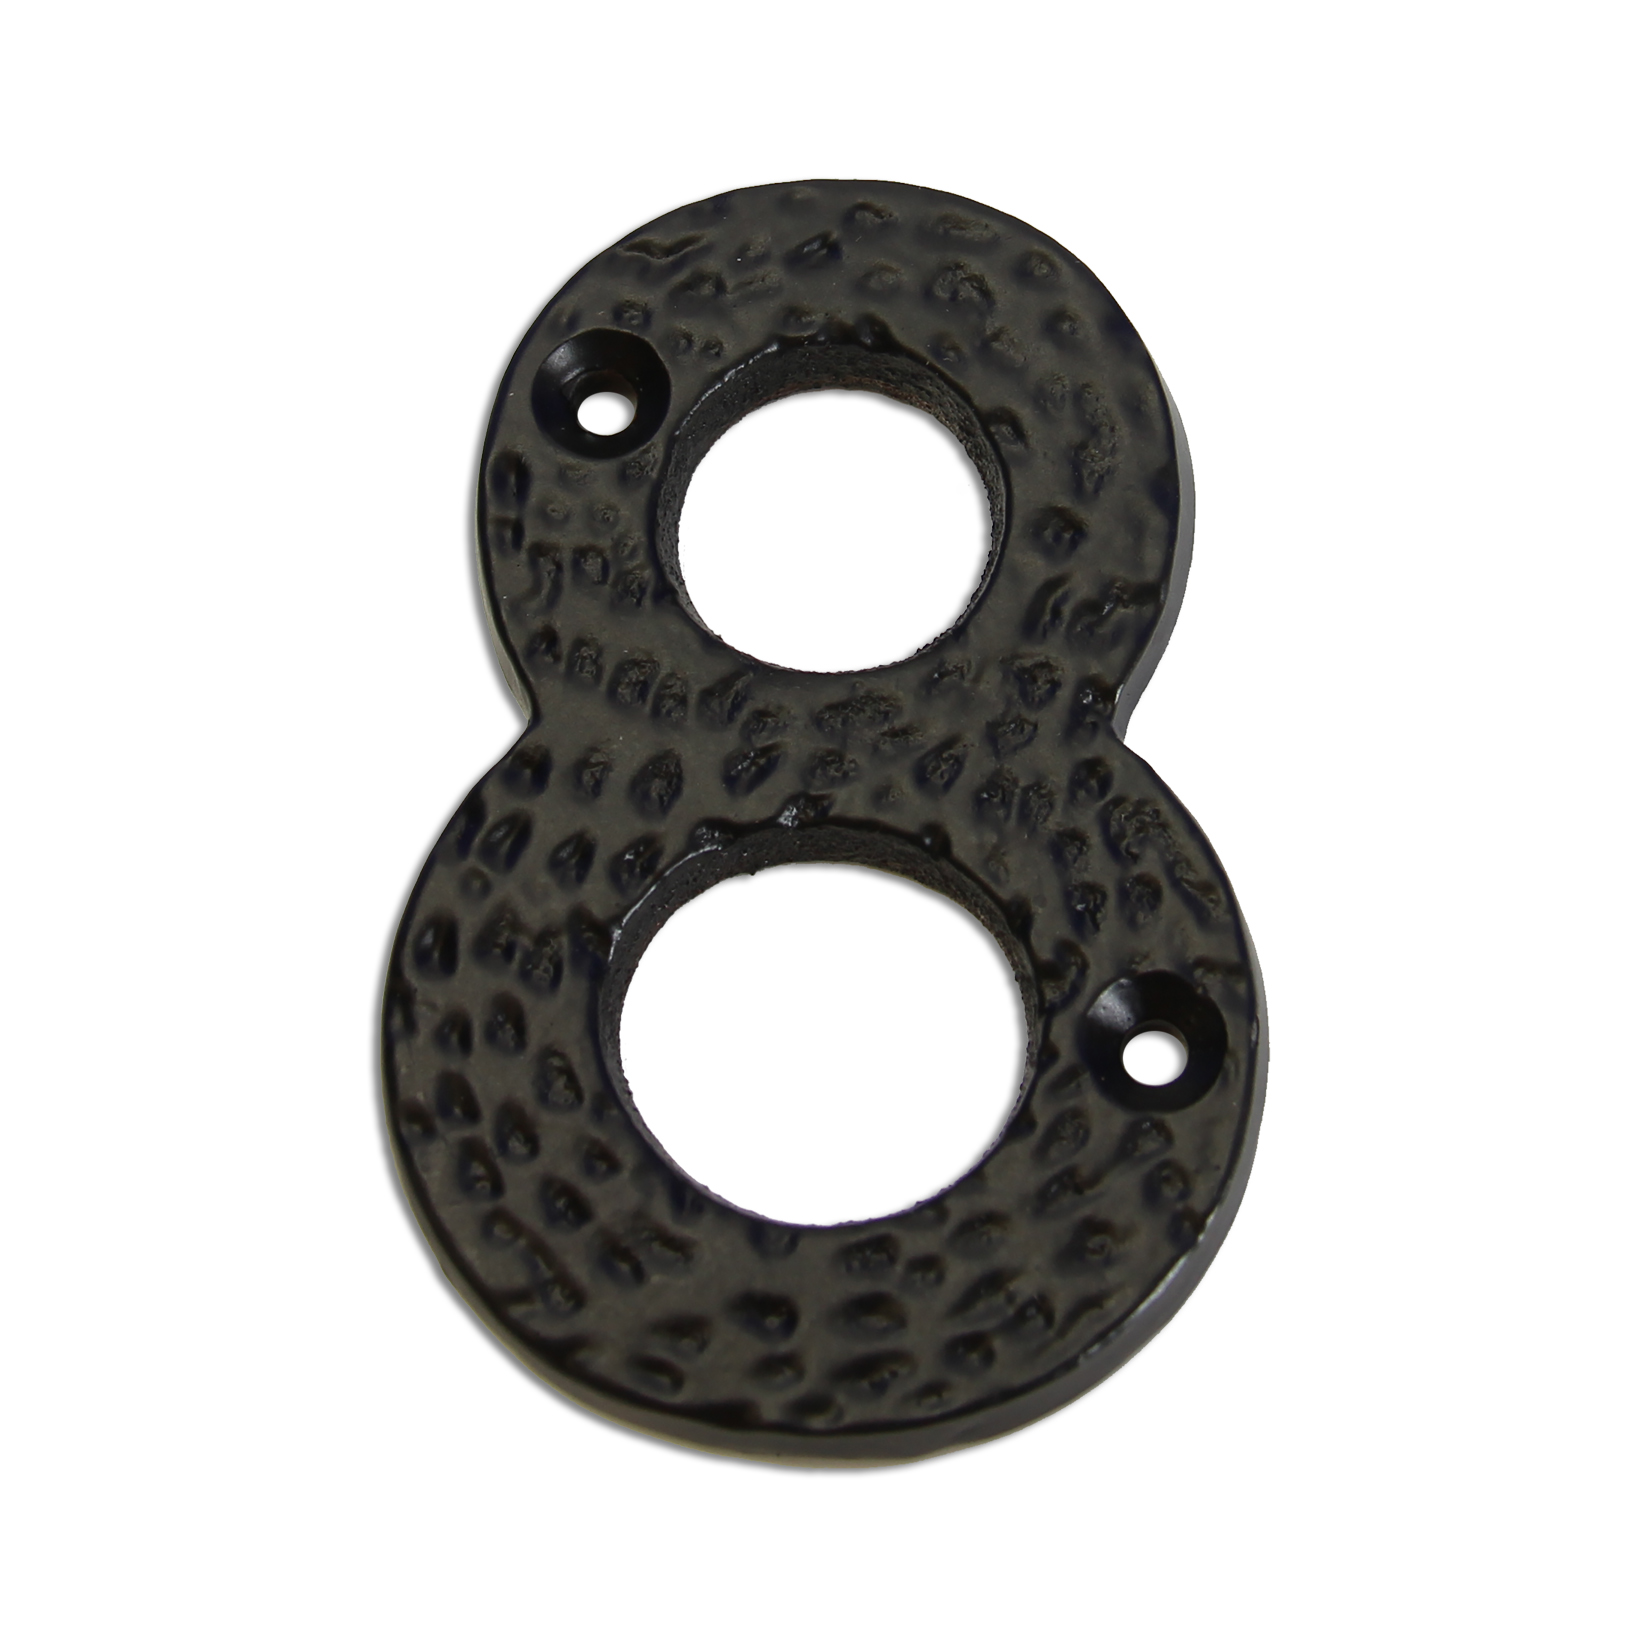 3-inch iron metal house number in iron black finish - metal number 8